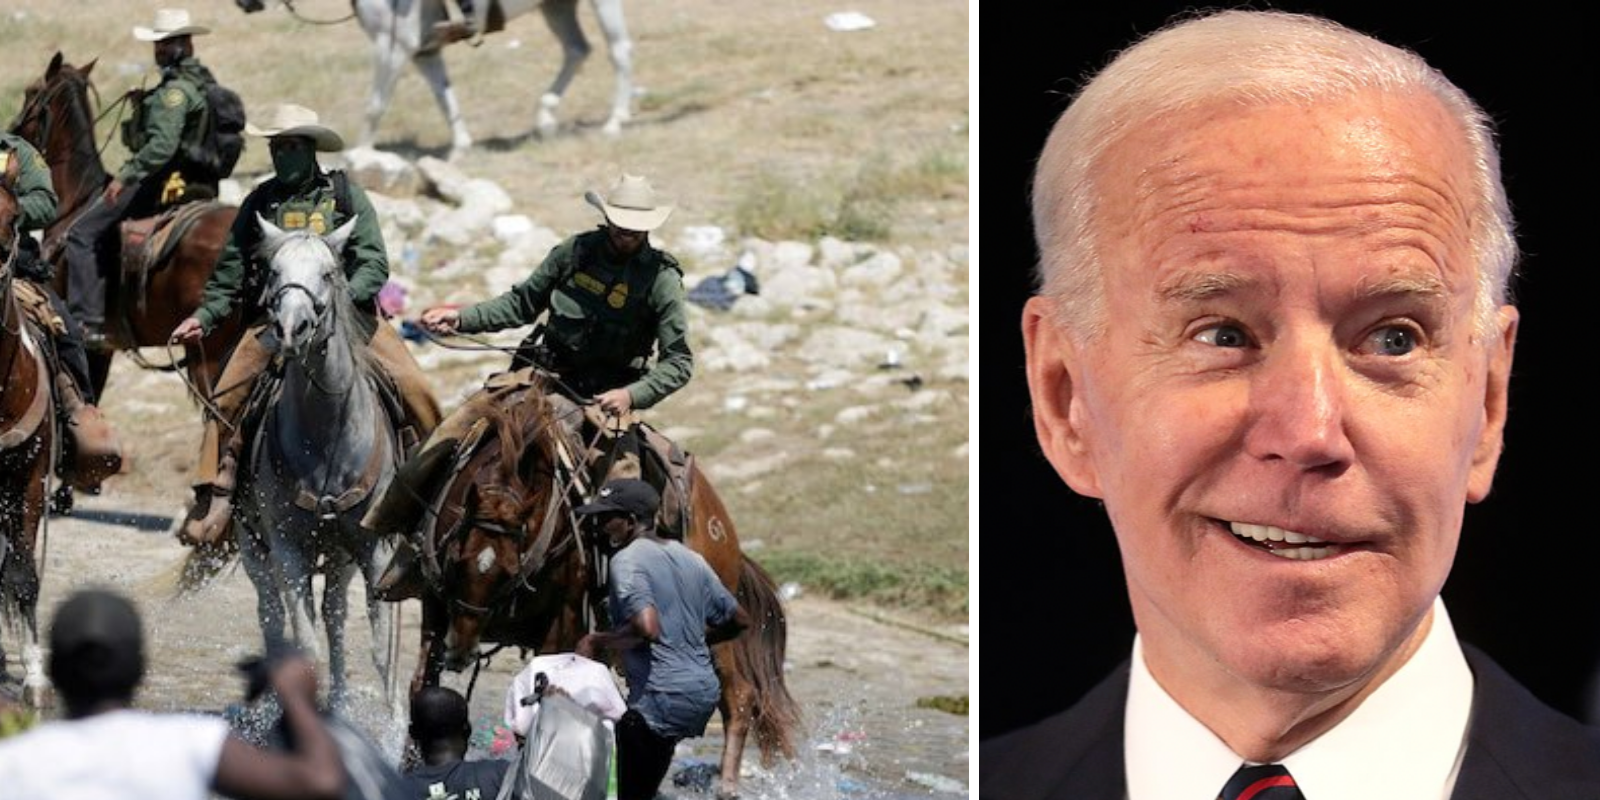 Journalist who photographed border patrol agents on horseback debunks media and Biden's claims that Haitian migrants were 'whipped'